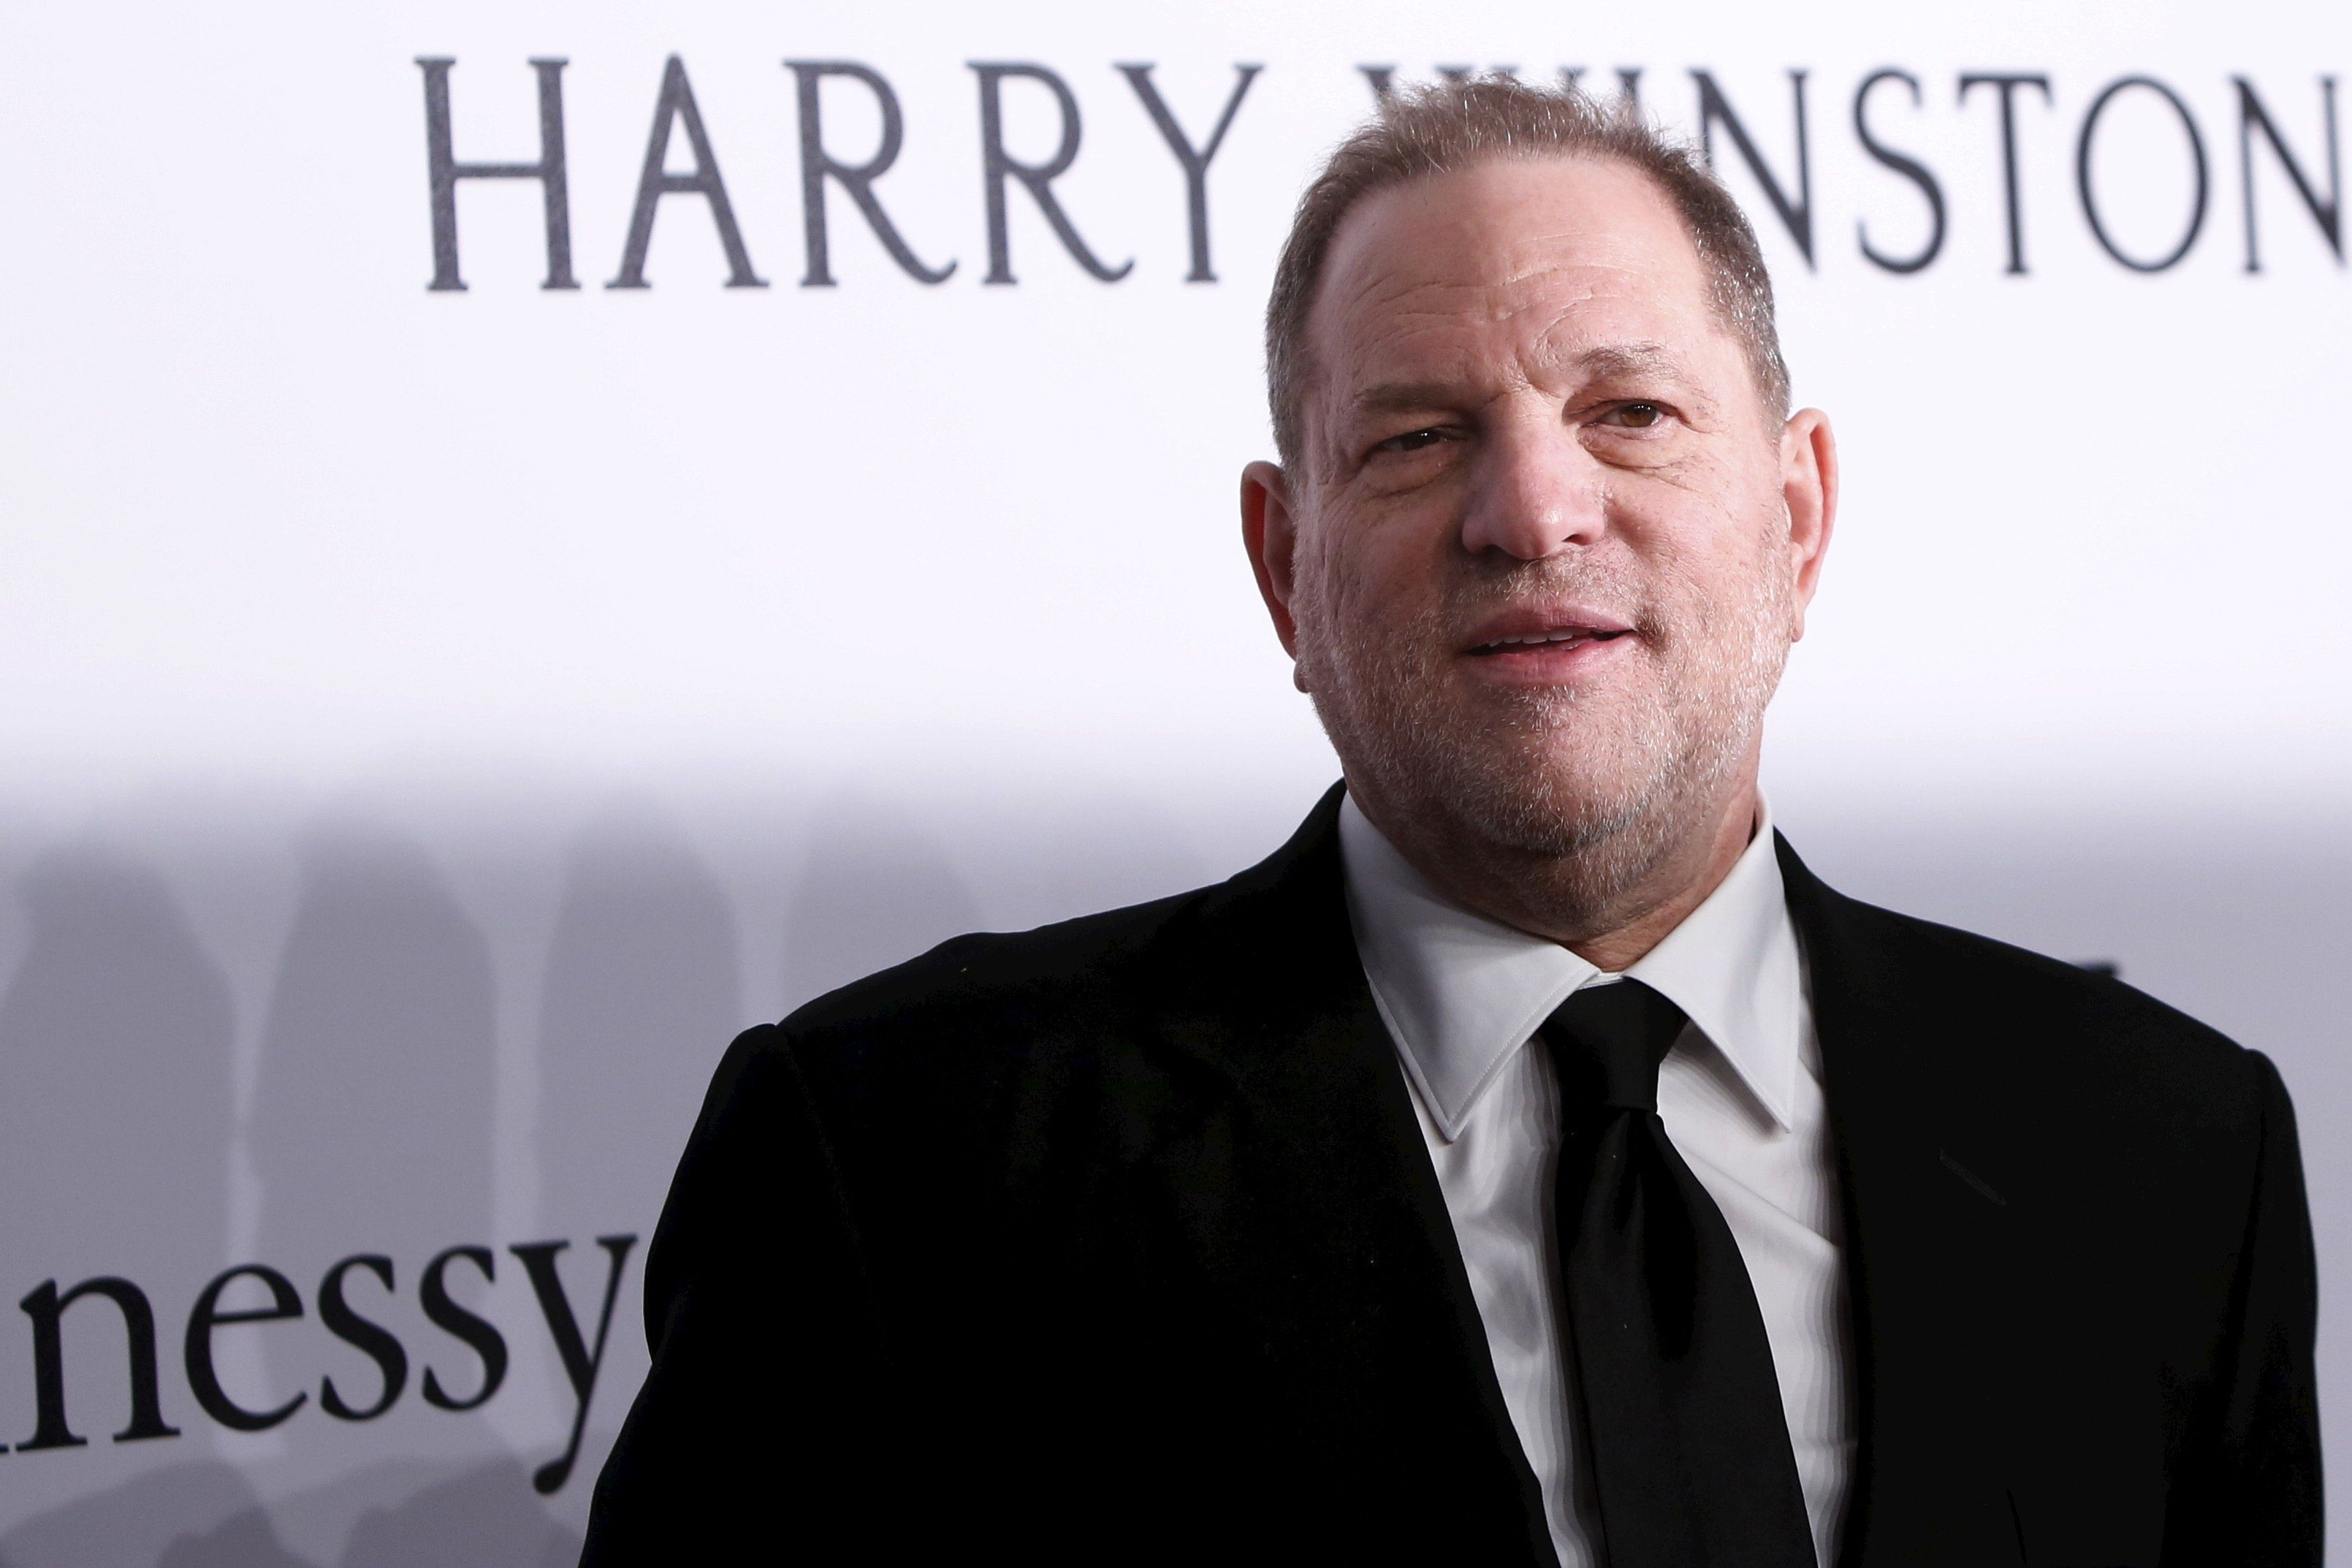 These Are The Most Incendiary Accusations Made Against Harvey Weinstein